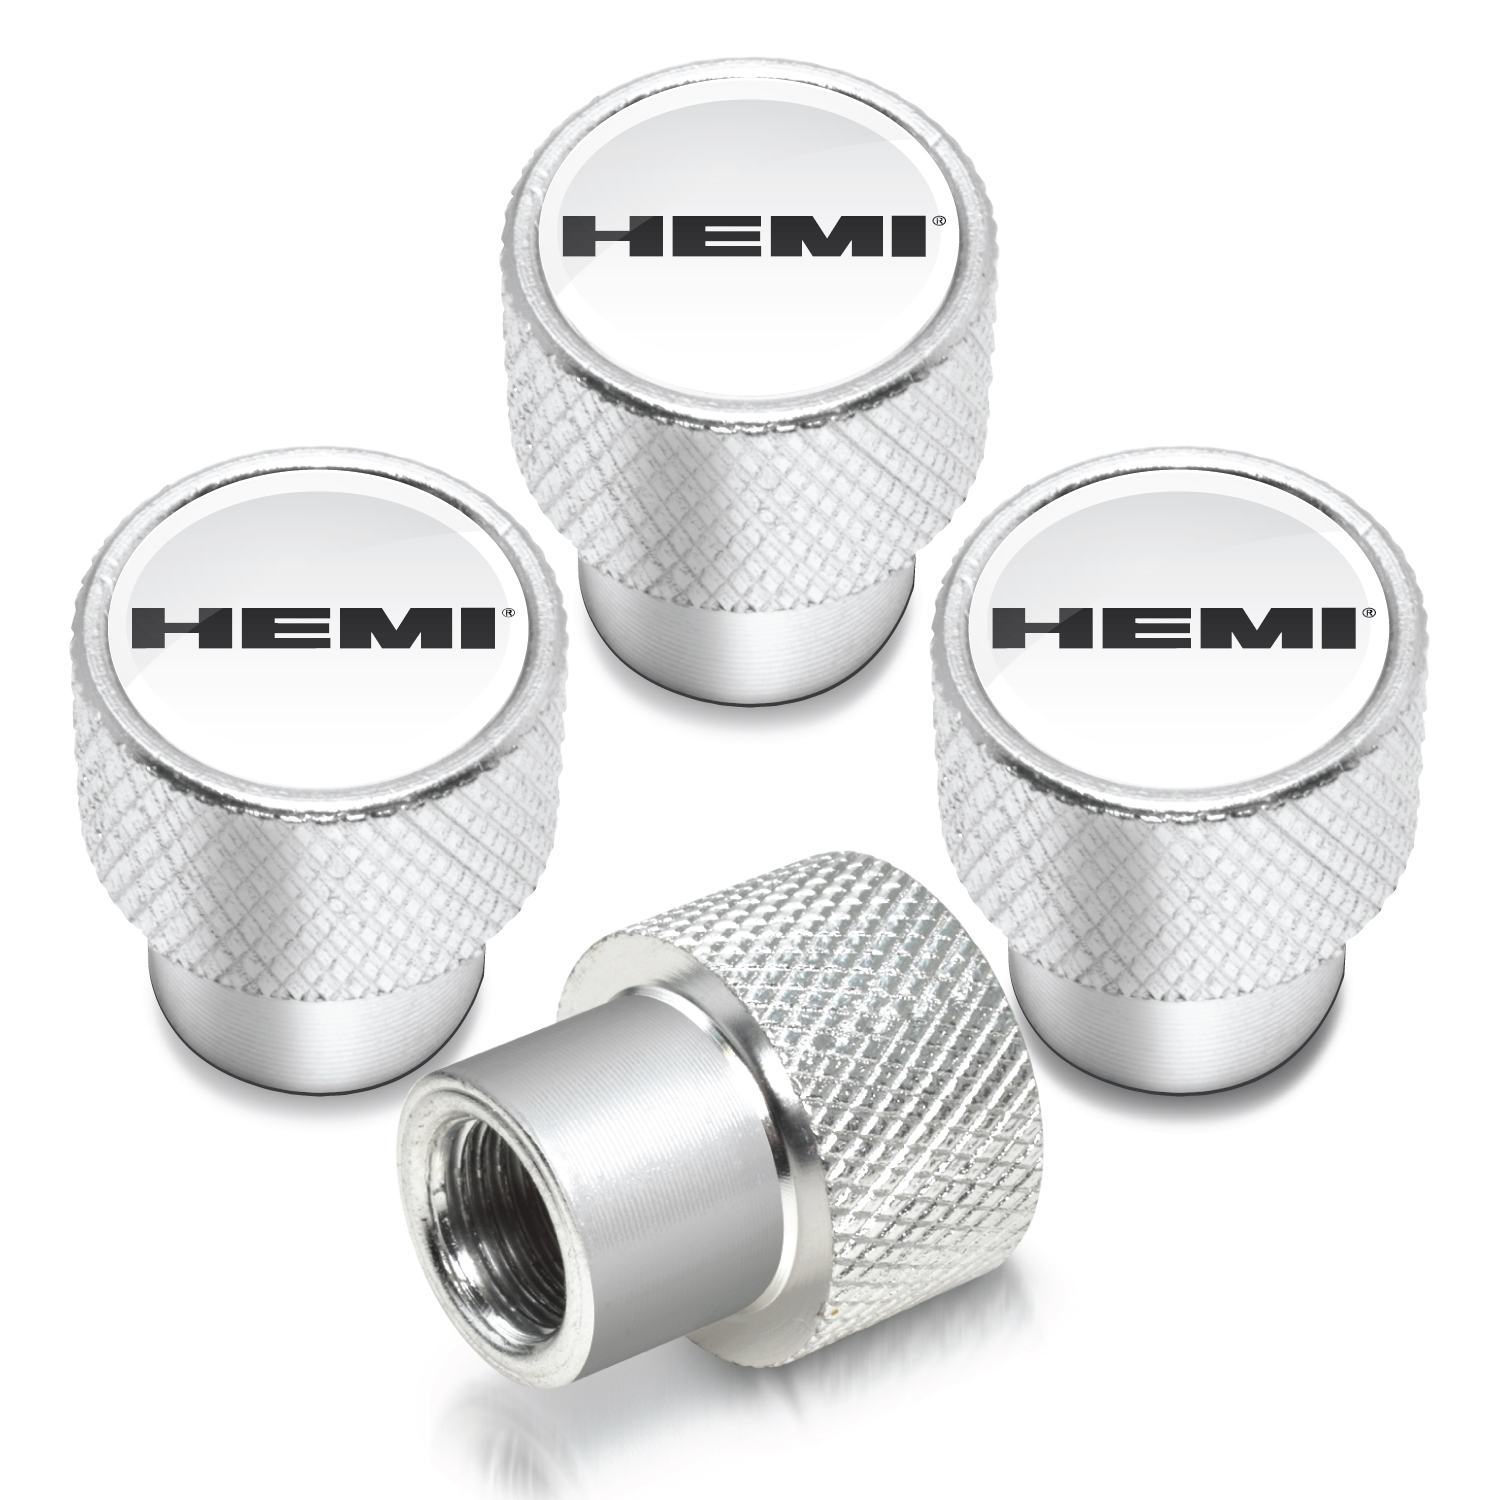 HEMI Logo in White on Shining Silver Aluminum Tire Valve Stem Caps